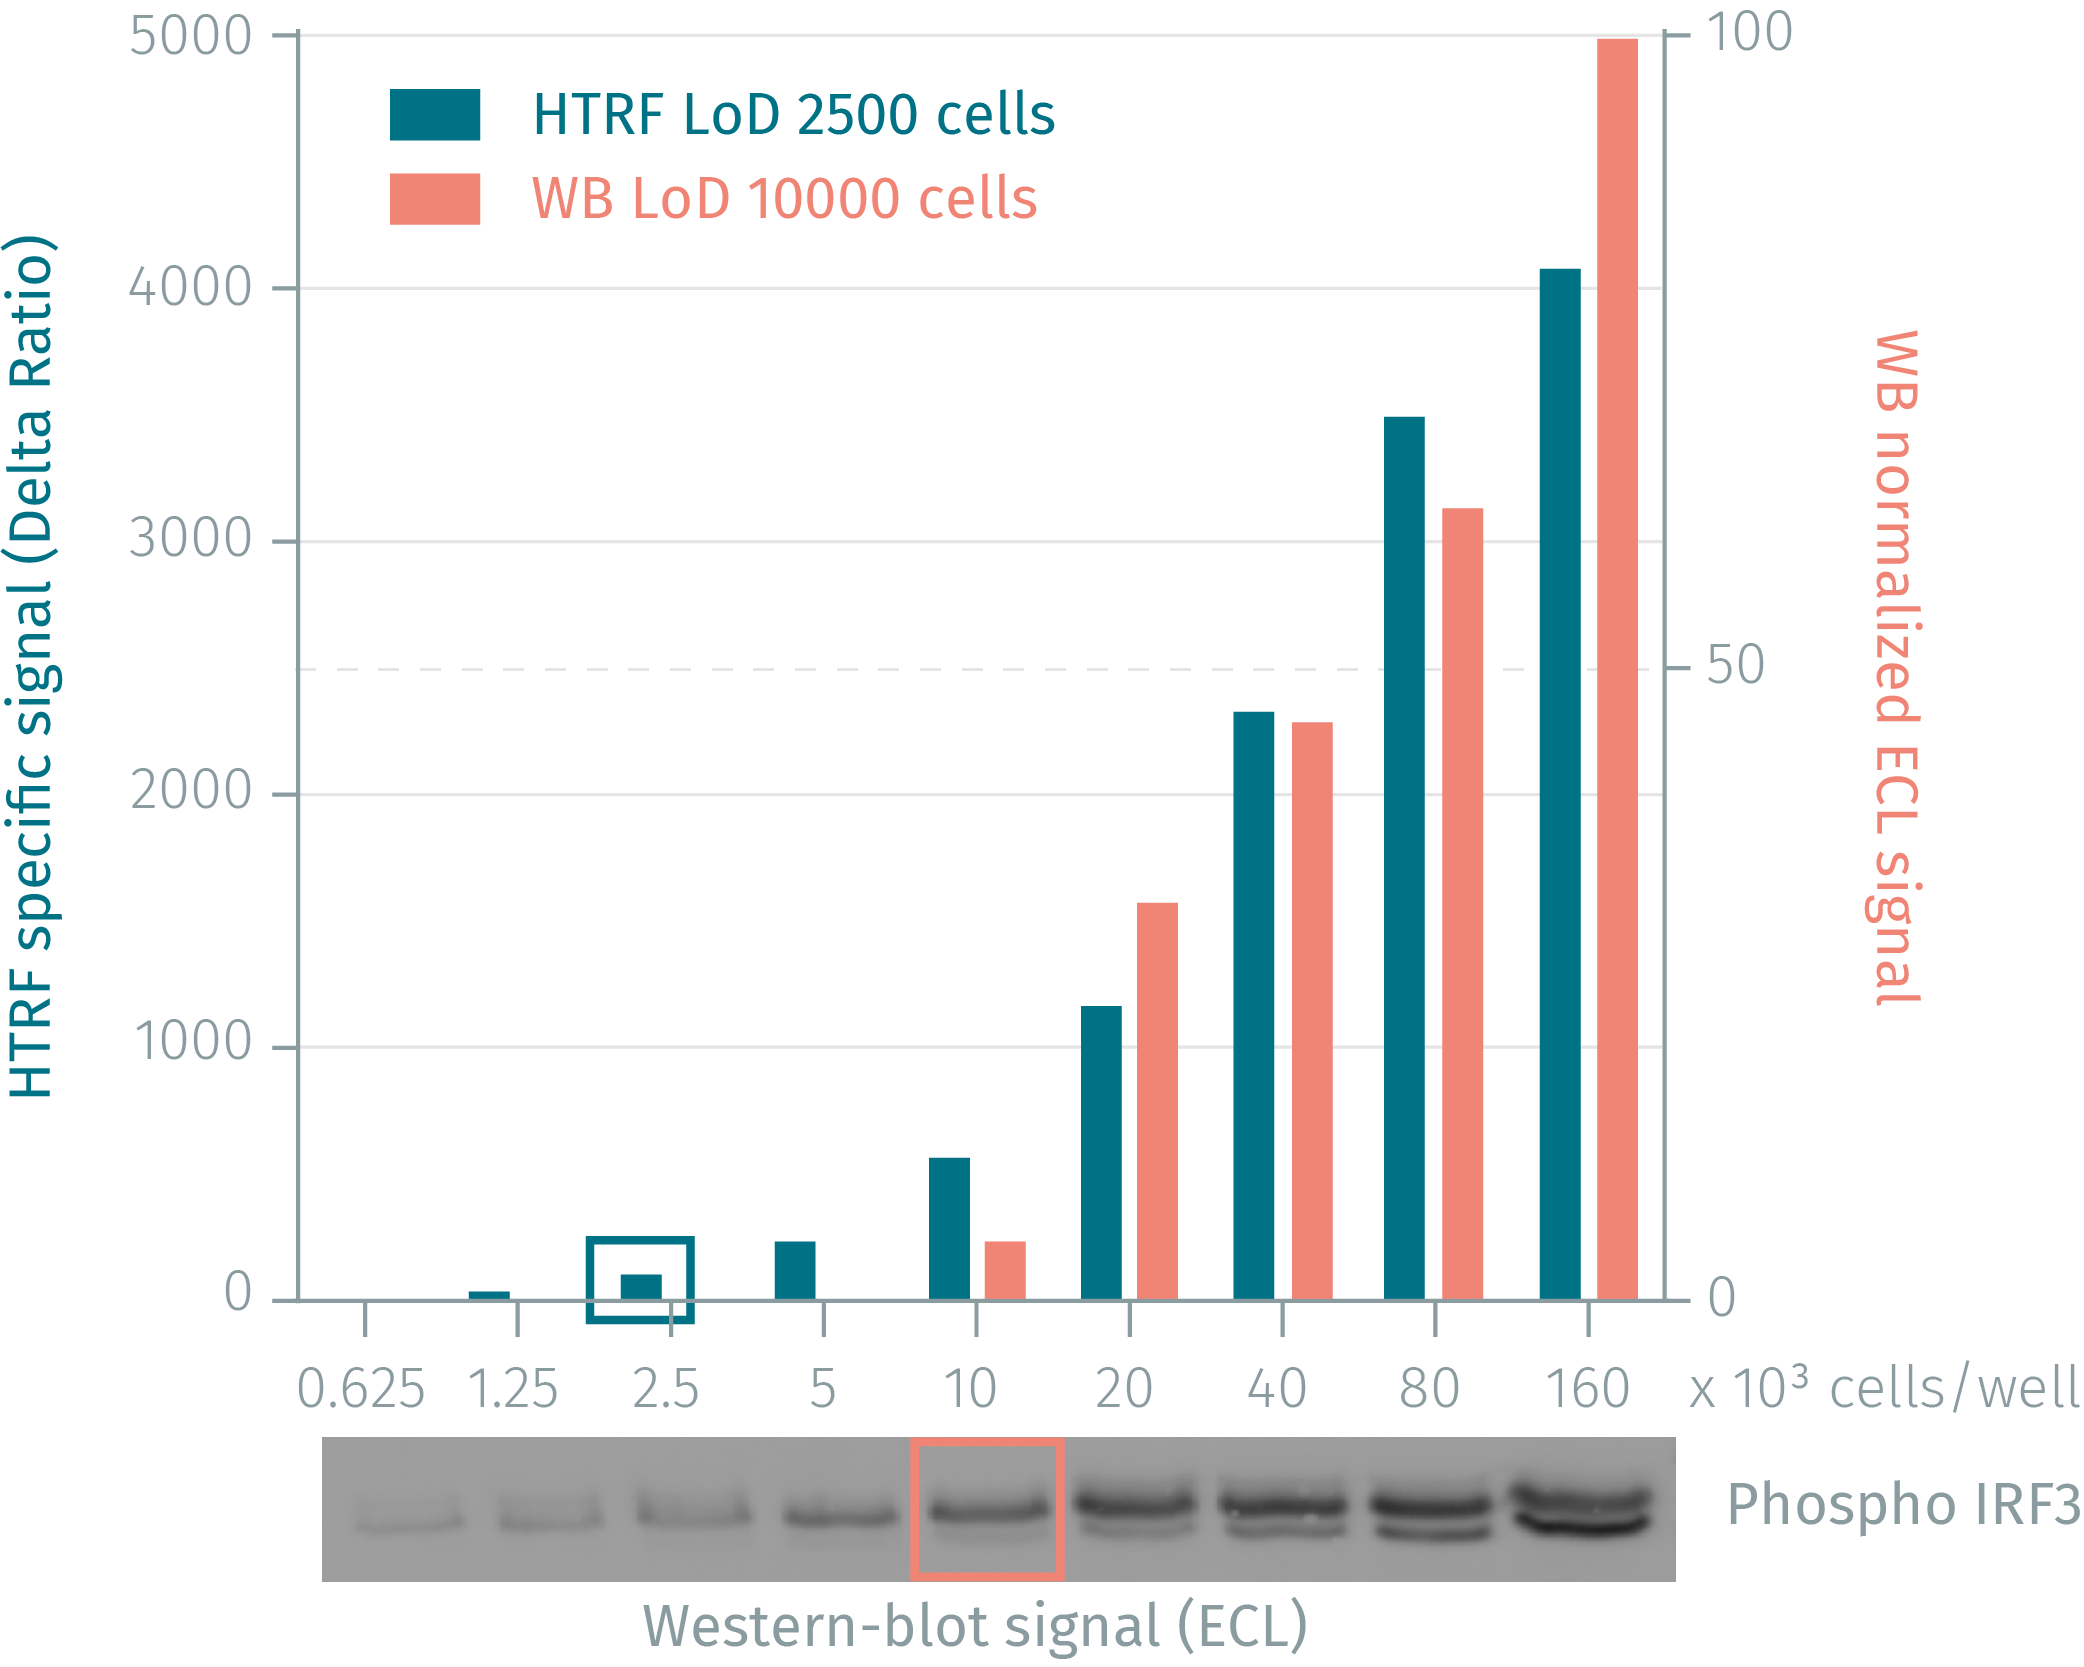 Phospho-IRF3 assay compared to western Blot with human MCF7 cells